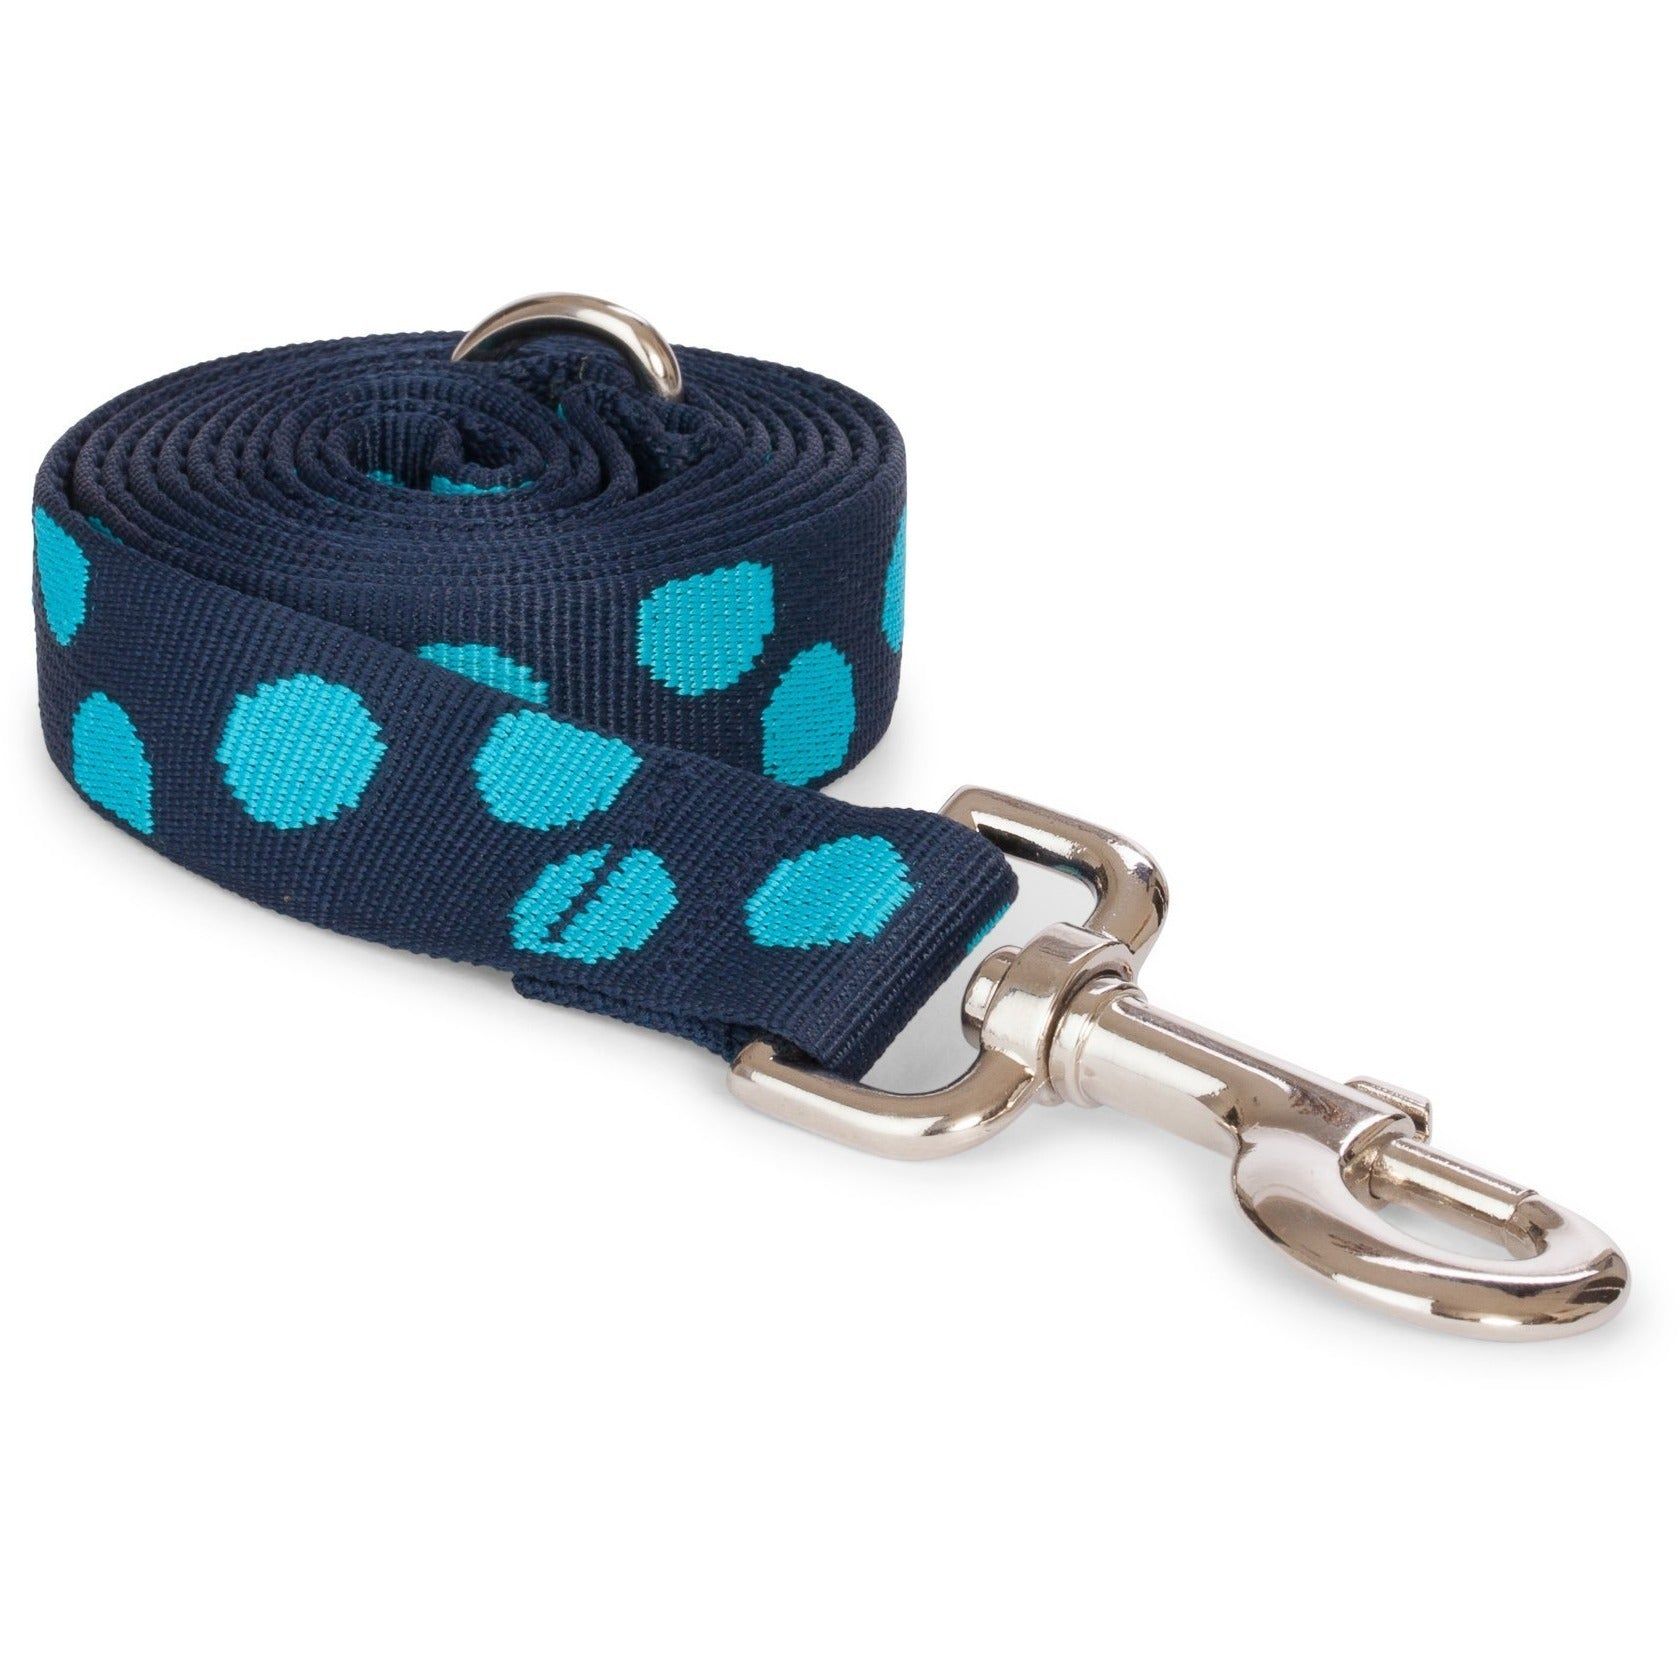 Doggie Trends Nyc Blue Polkadot Dog Leash